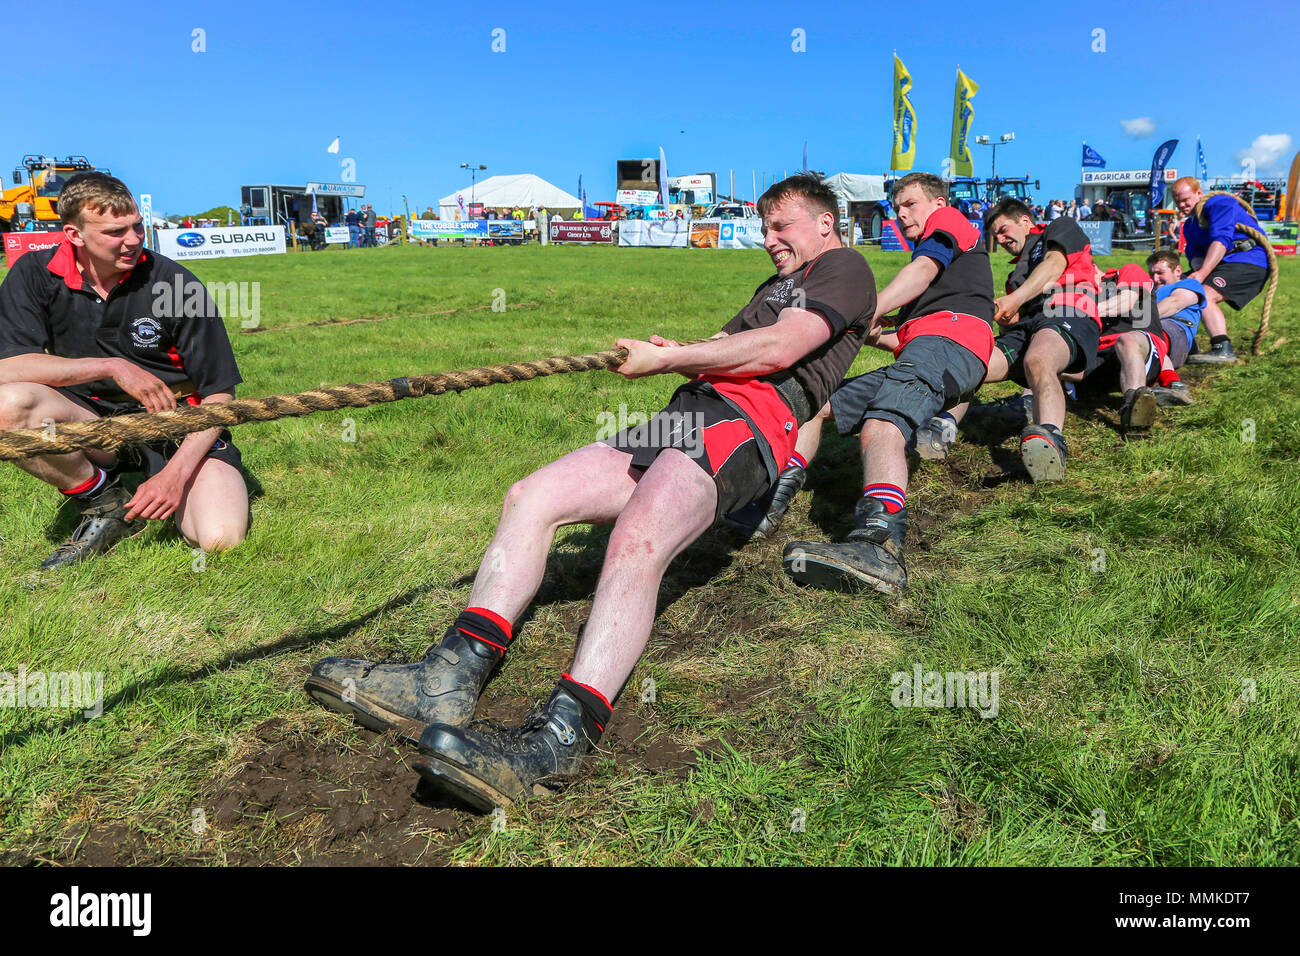 Ayrshire, UK. 12th May 2018. On a hot and sunny May day, the annual Ayr County Show held at Ayr Race course attracted hundreds of entrants to the farming competitions and also thousands of spectators. As well as the usual competitions for cattle, sheep and poultry, there were prizes for the winners of the male and female 'Young Farmers Tug of War' competition and for the best decorated lorry Credit: Findlay/Alamy Live News - Stock Image